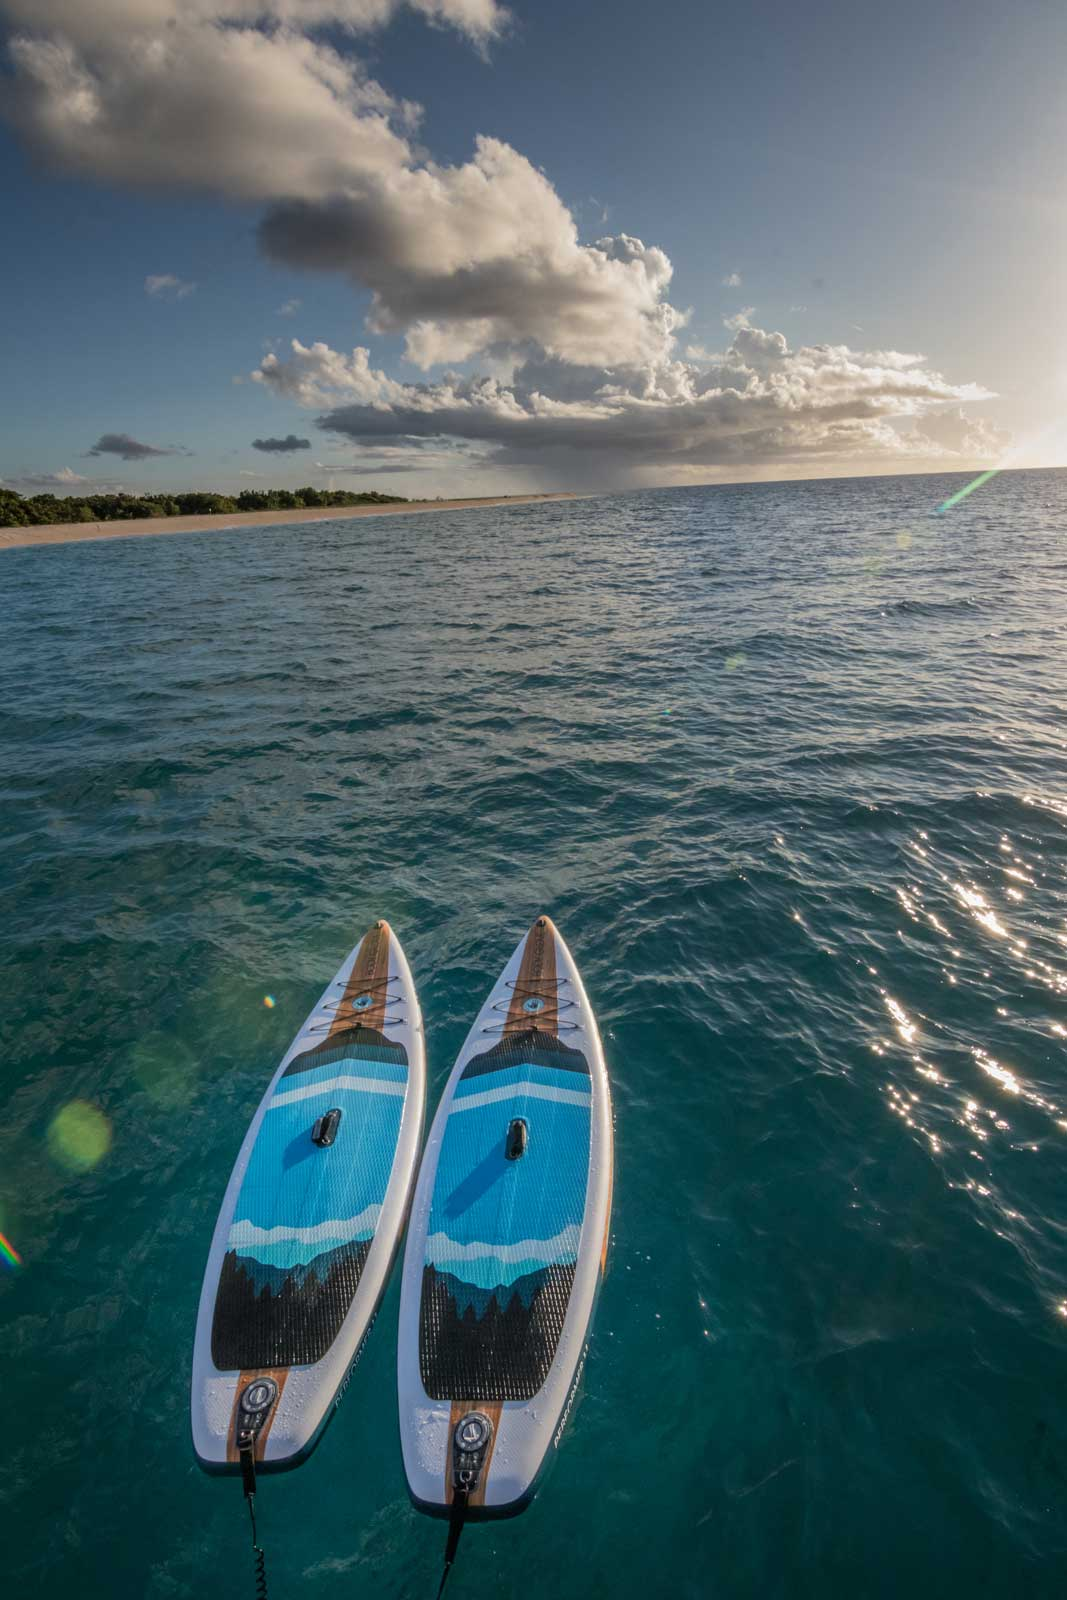 Two paddle boards with graphics depicting dark blue and black mountains drifting in the sea.